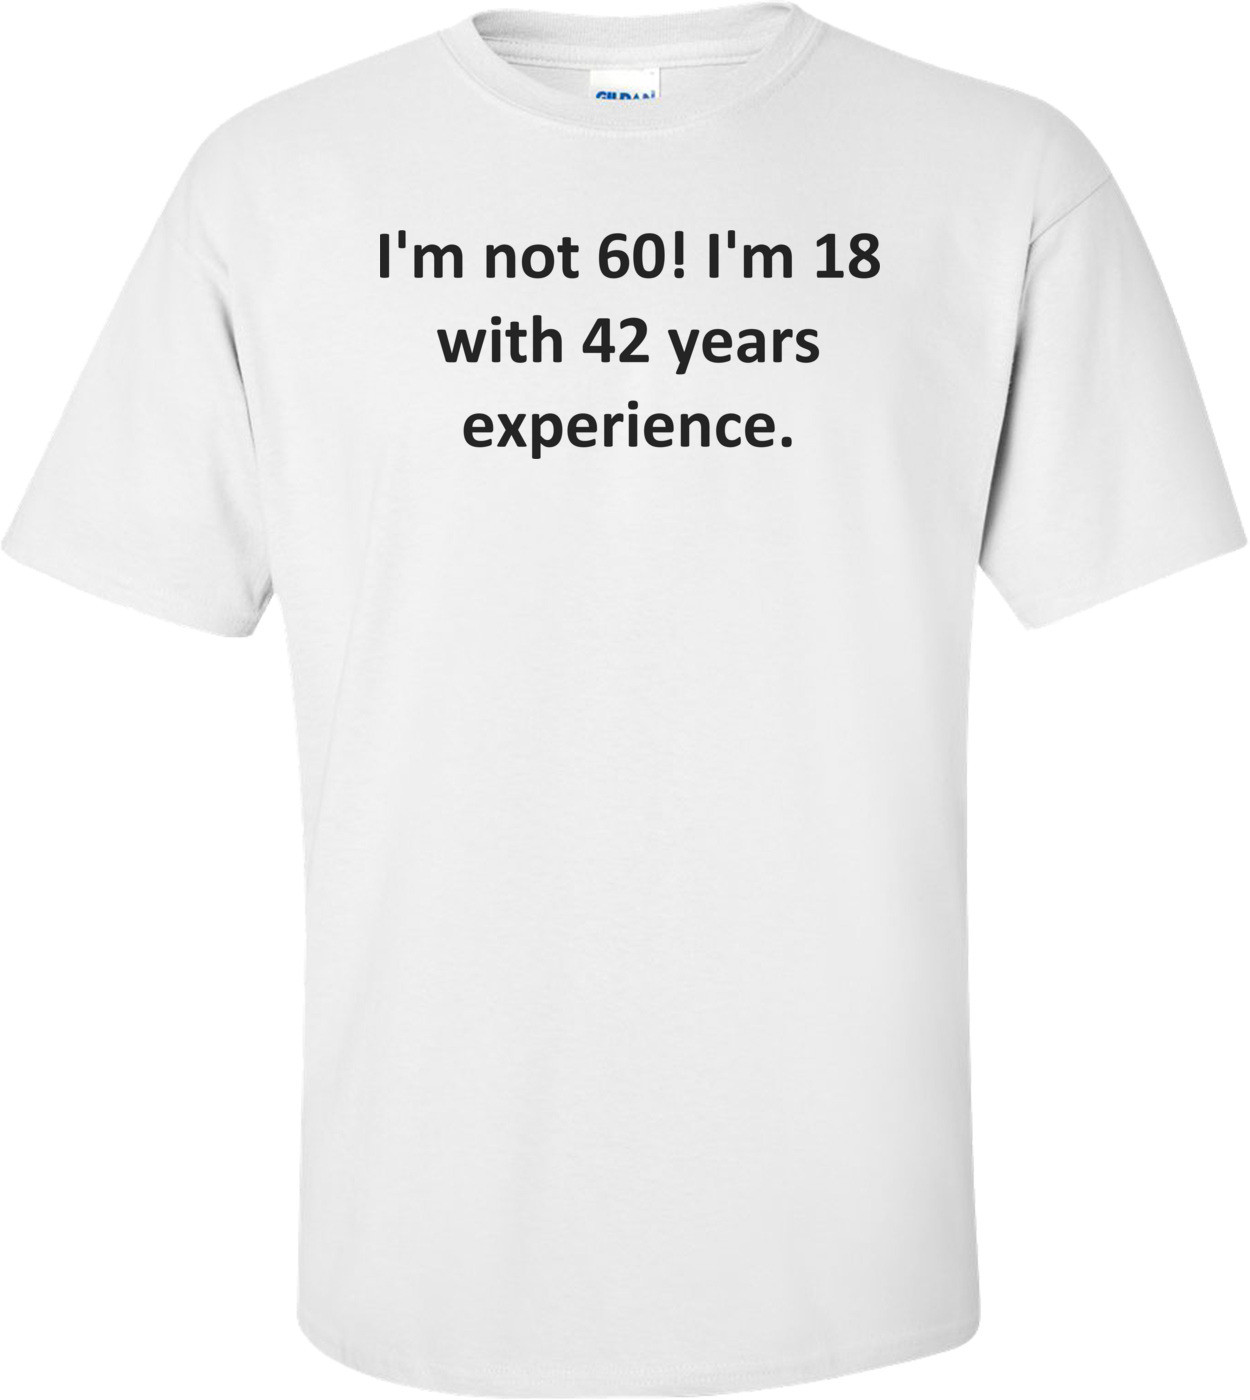 I'm not 60! I'm 18 with 42 years experience. Shirt